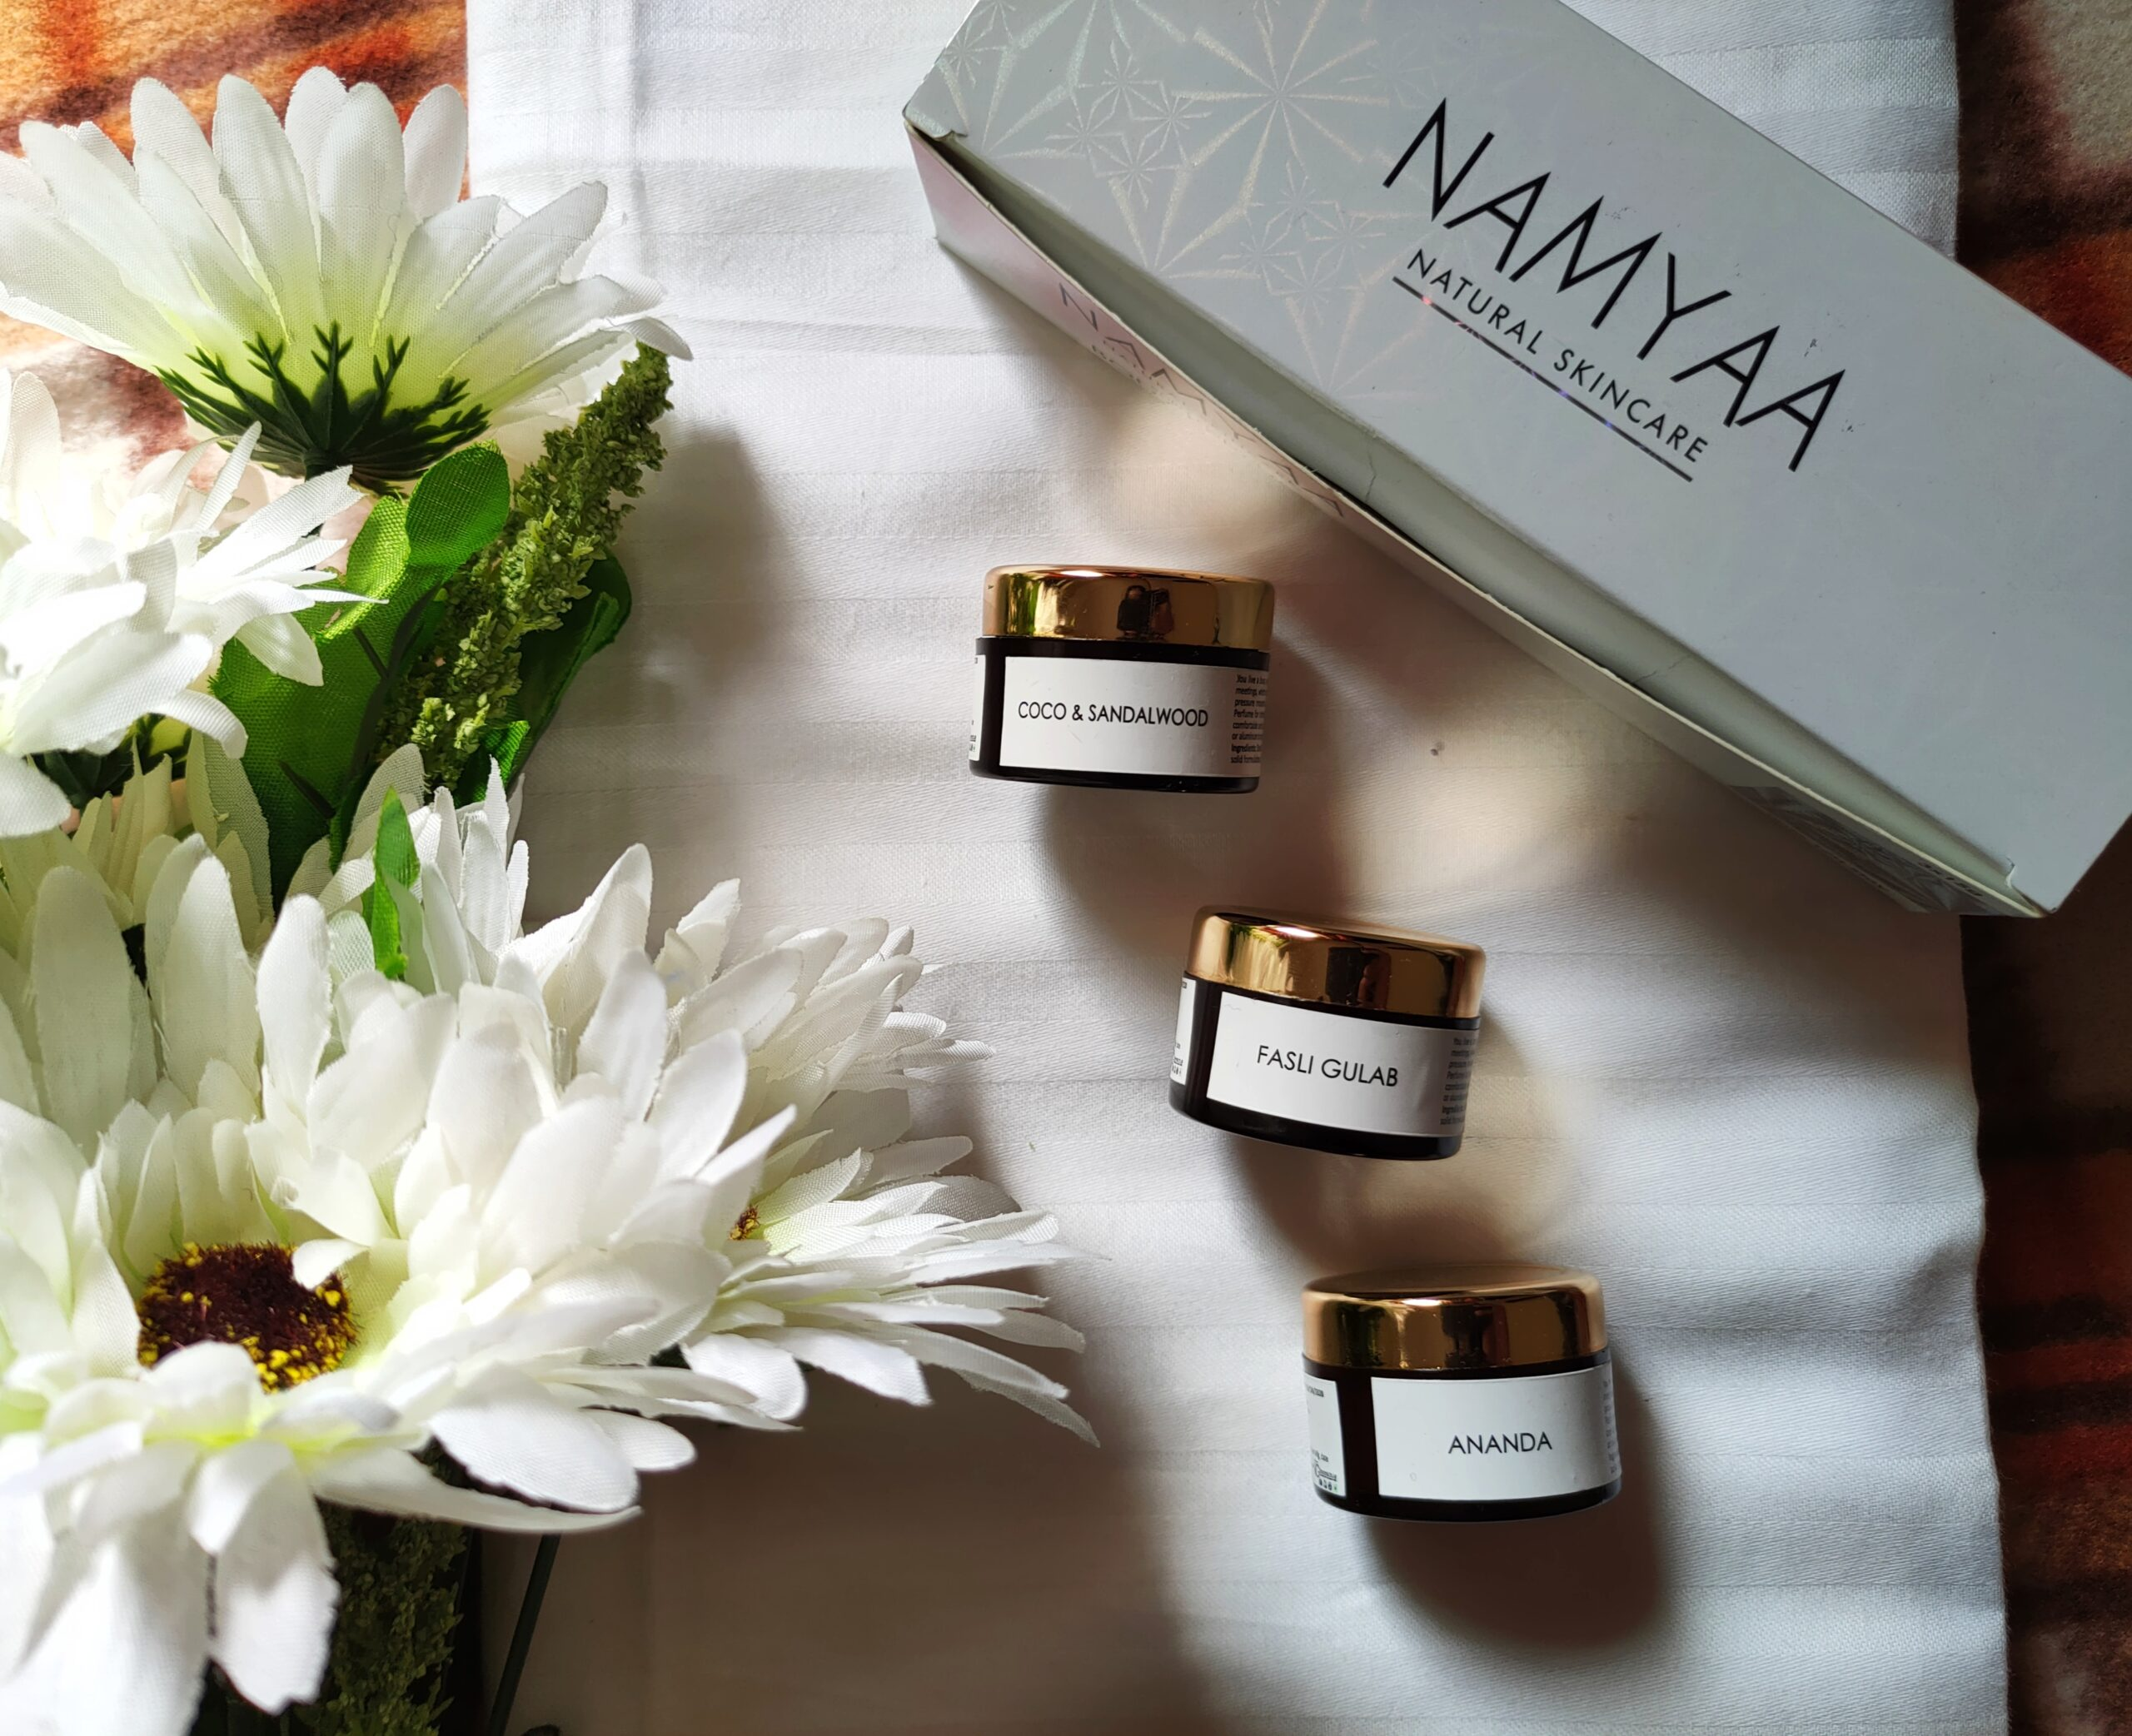 Namyaa Solid Body Perfume for Sensitive Areas Review